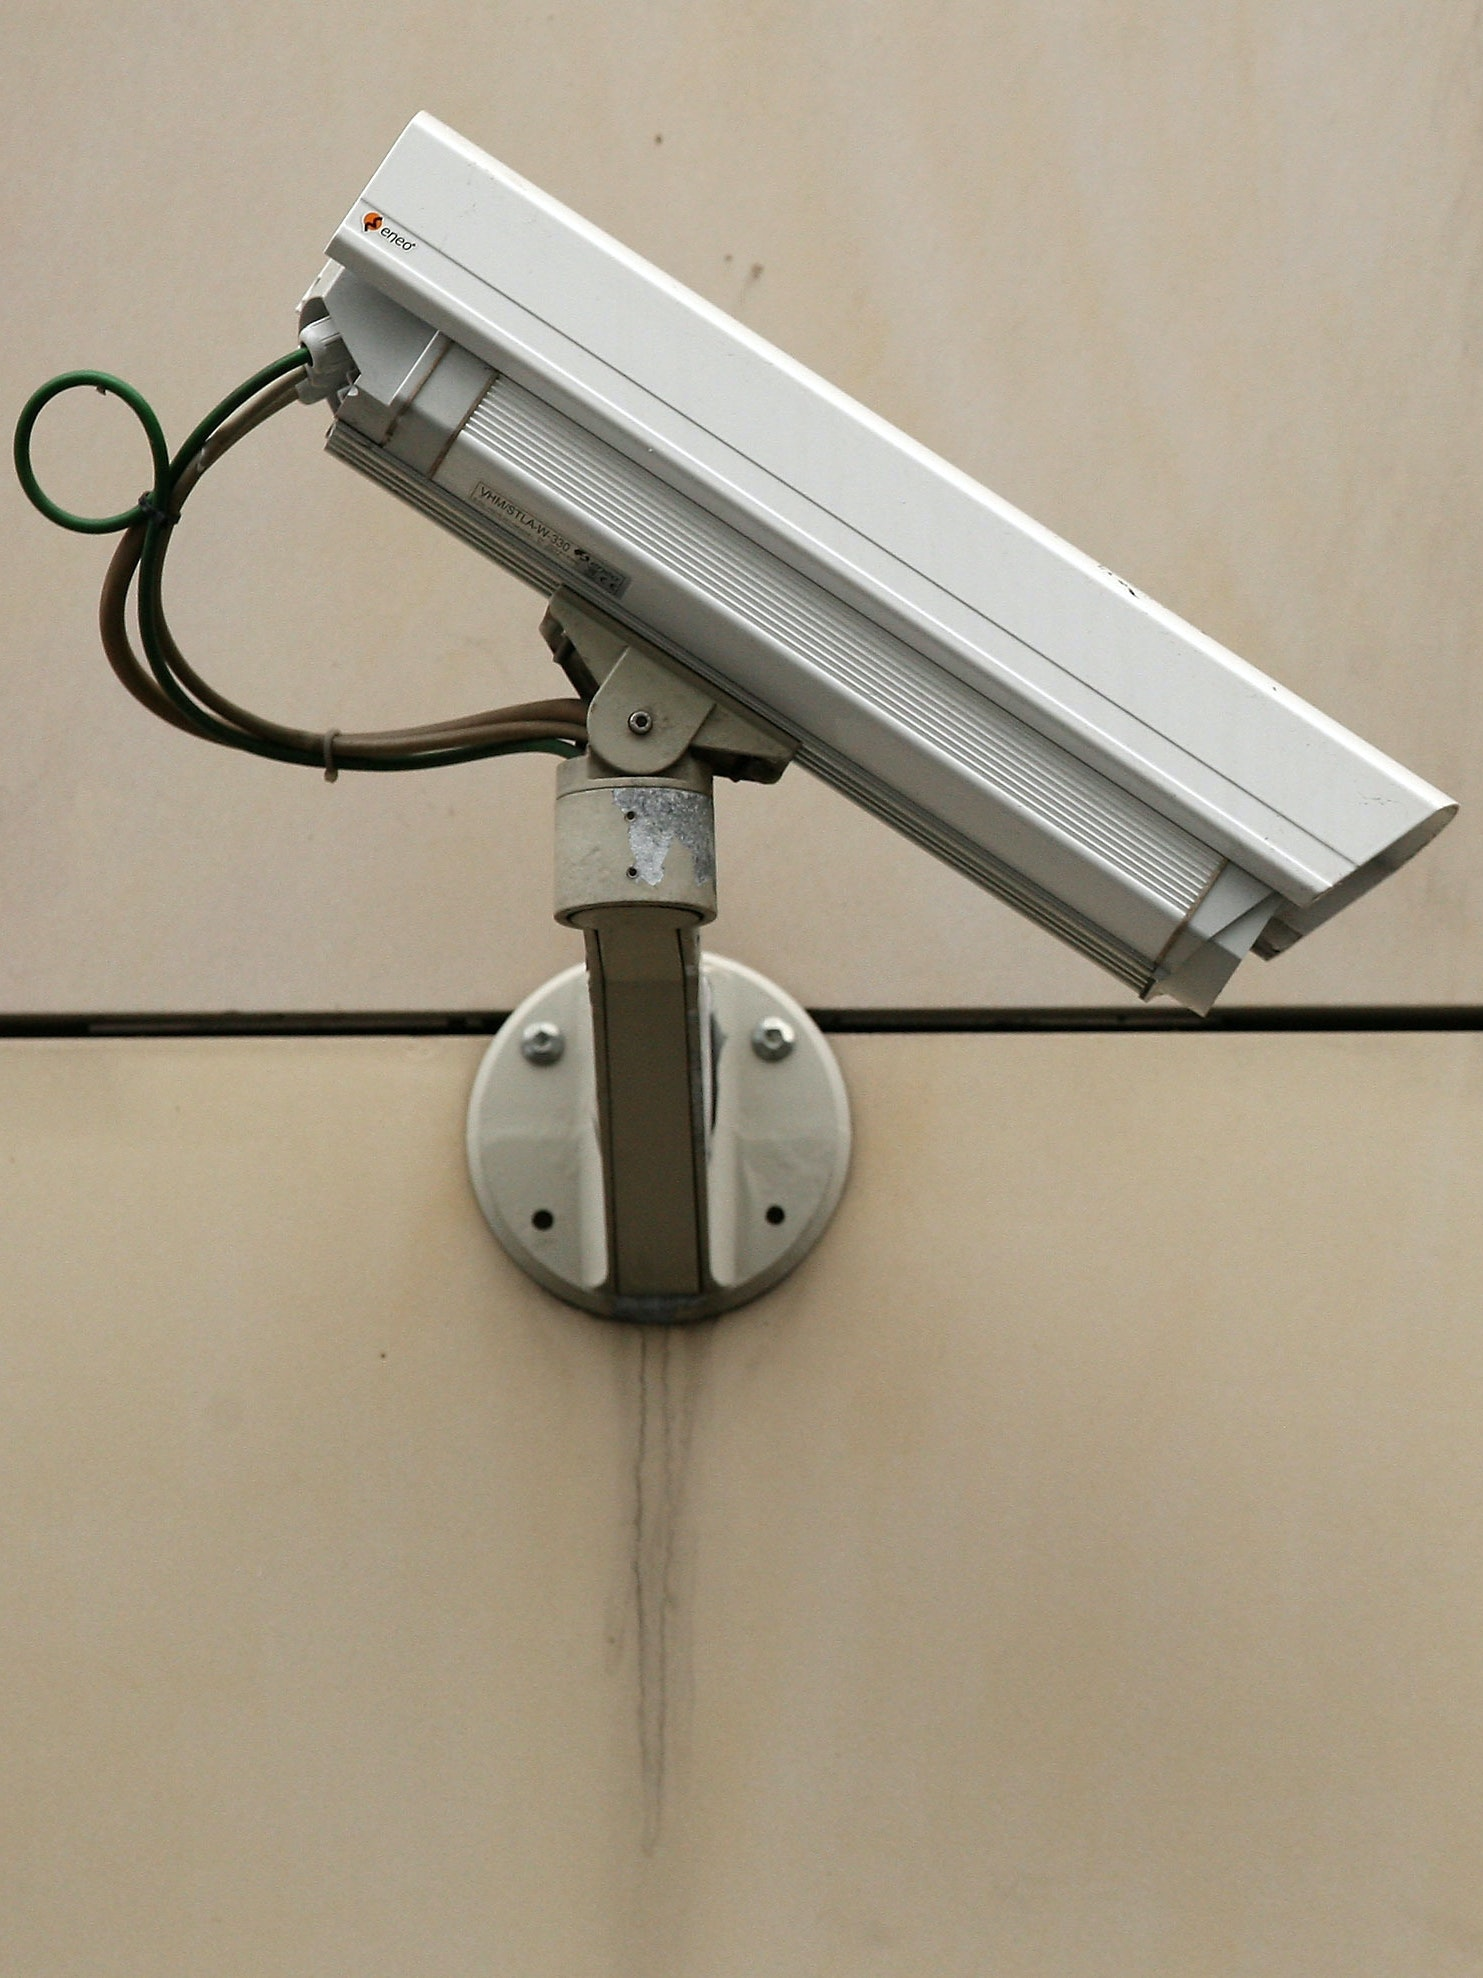 BERLIN, GERMANY - DECEMBER 18:  A security camera hangs on the street on December 18, 2012 in Berlin, Germany. After an attempted bombing at the main train station in Bonn, about whose planting on site security cameras were not able to provide sufficient footage as evidence, the German government is discussing increasing its public video surveillance.  (Photo by Adam Berry/Getty Images)